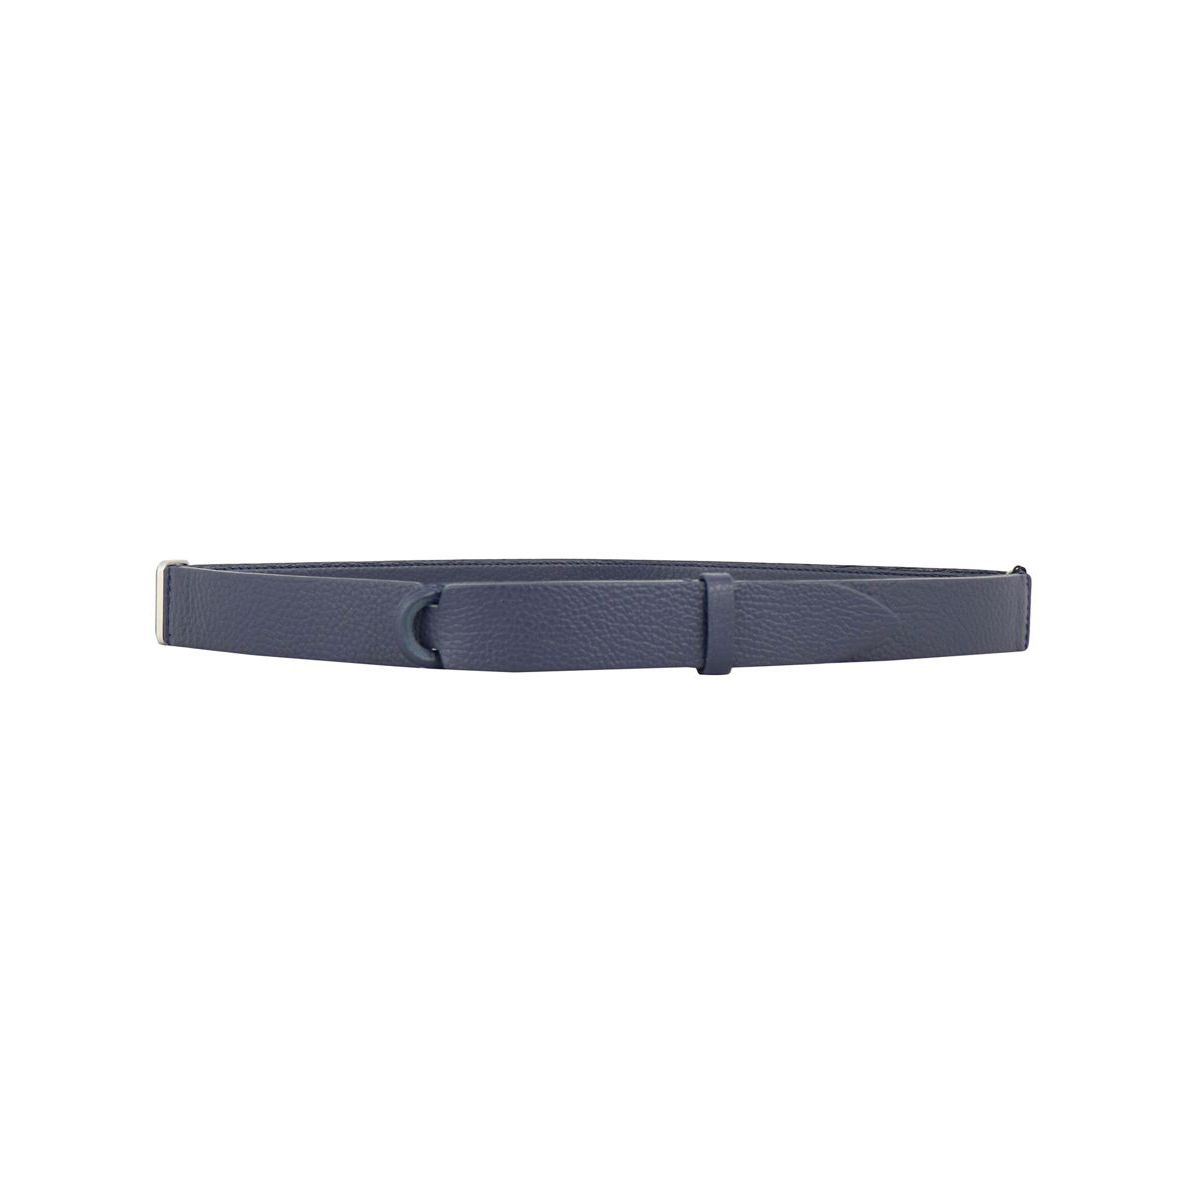 NO BUCKLE belt in hammered leather Navy Orciani